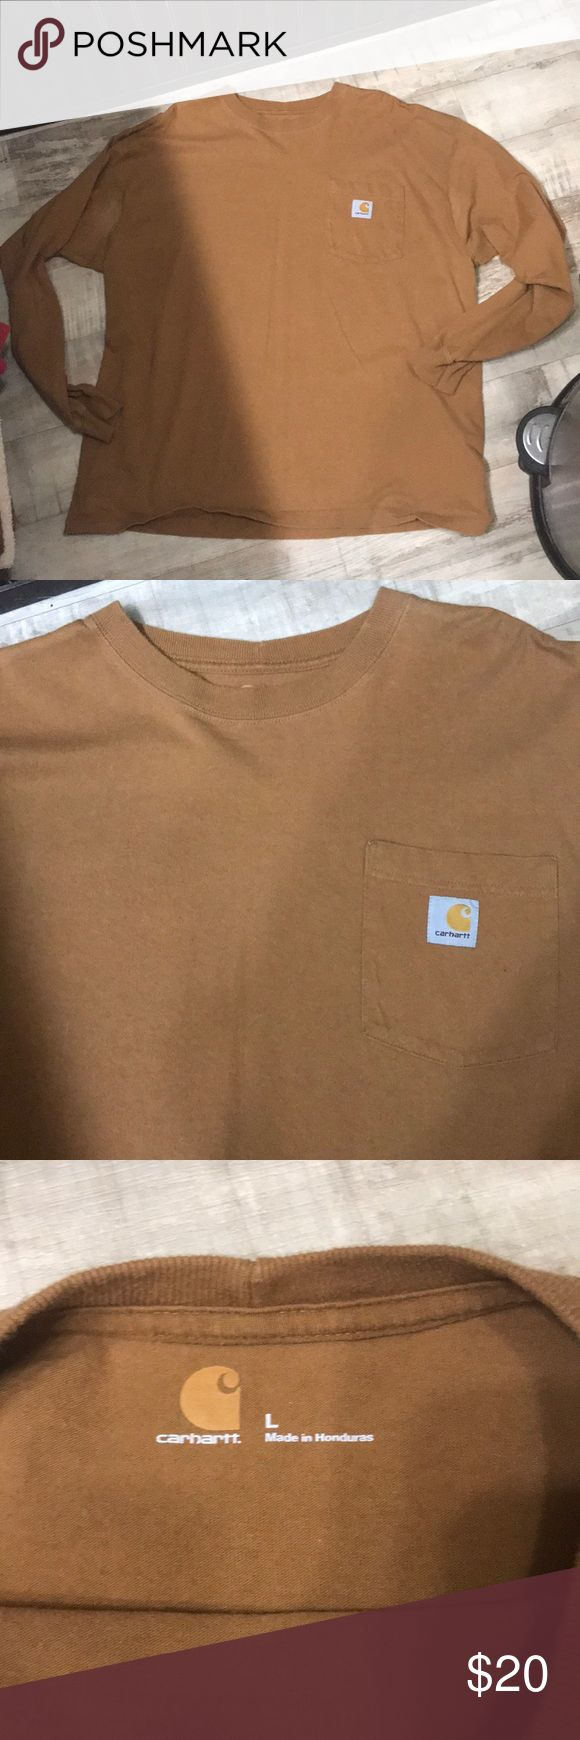 Bundle 2 Carhartt long sleeve pocket t shirts Both Like new. Only wore a few times during the late winter season then went up a size the next winter.  No holes or stains in either and really no signs of wear  at all Carhartt Shirts Tees - Long Sleeve